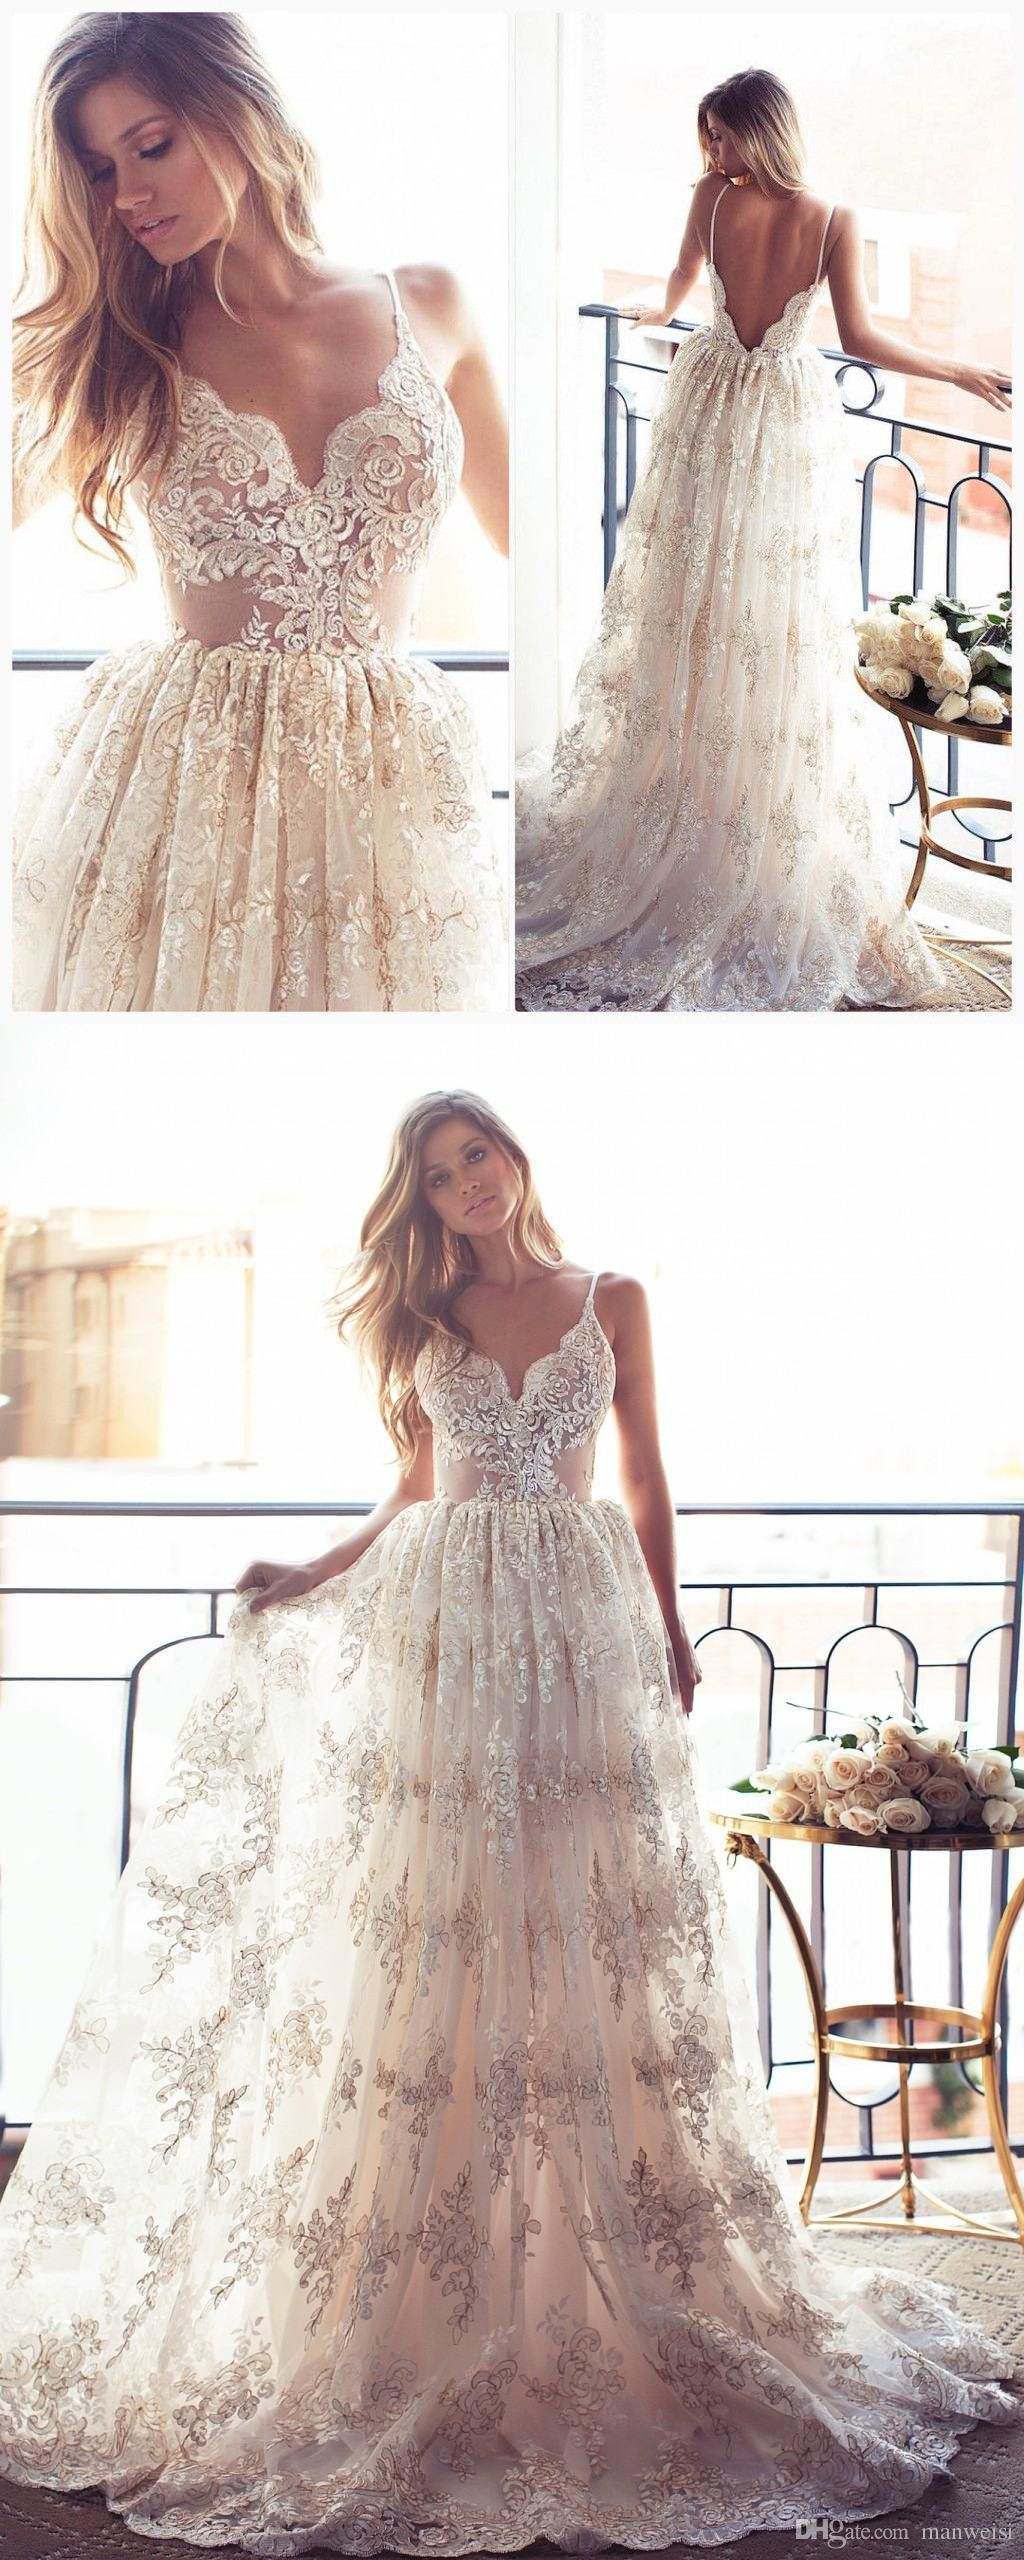 Fancy  wedding dress white lace wedding dress romantic wedding dress